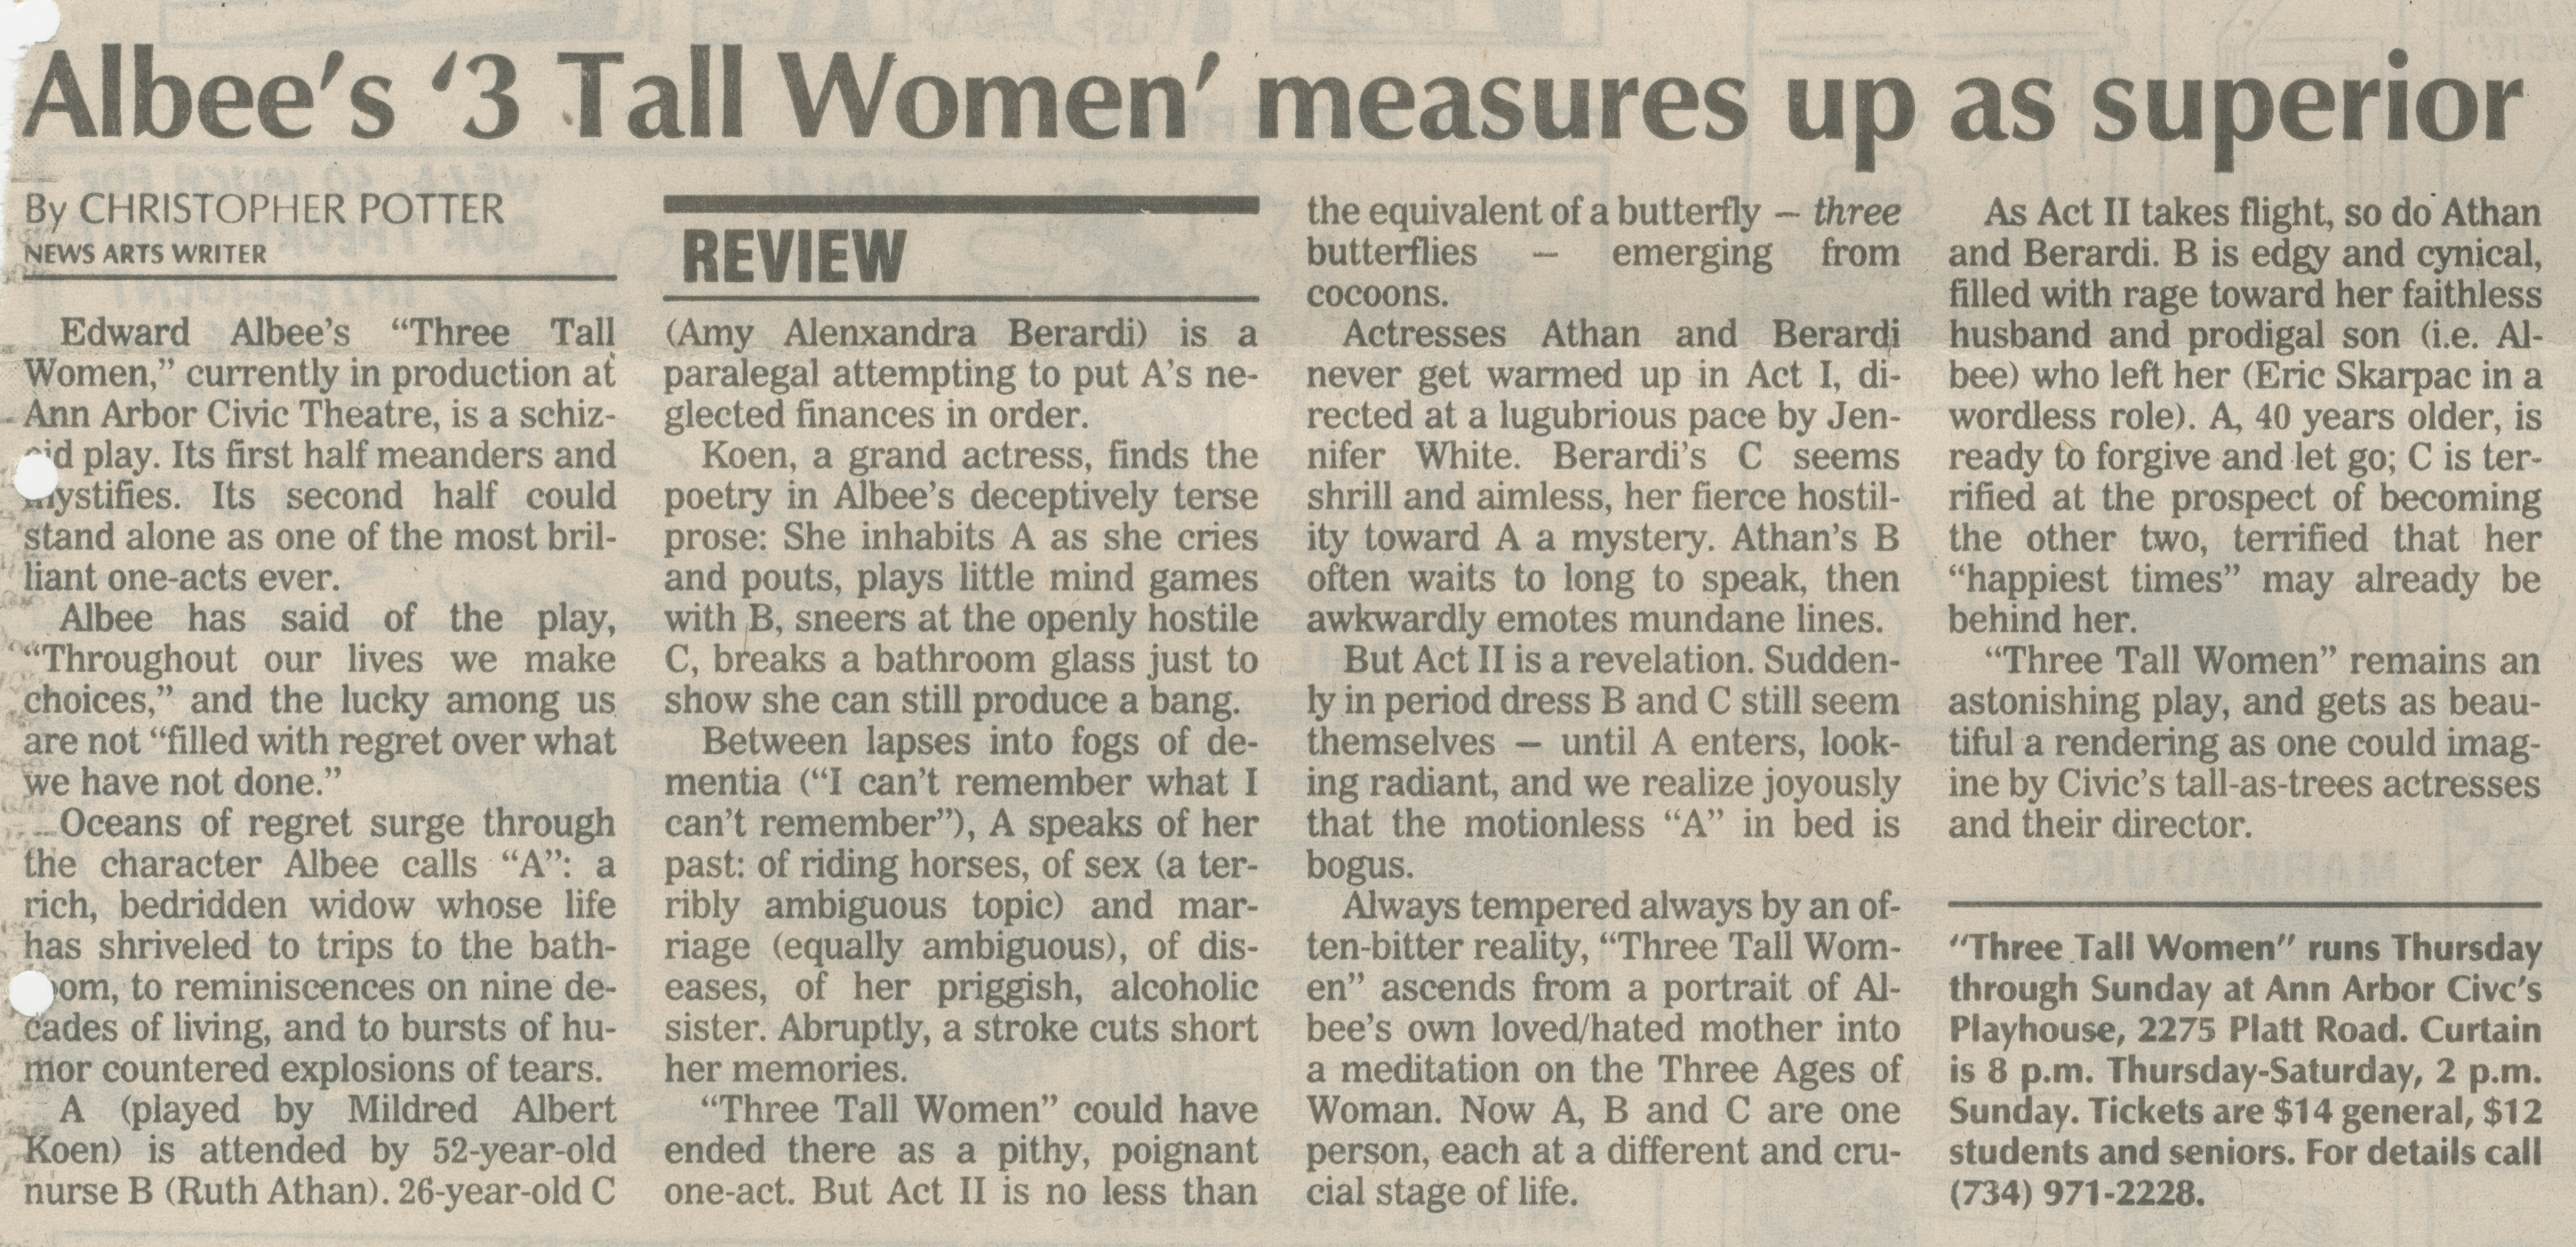 Albee's '3 Tall Women' Measures Up As Superior image